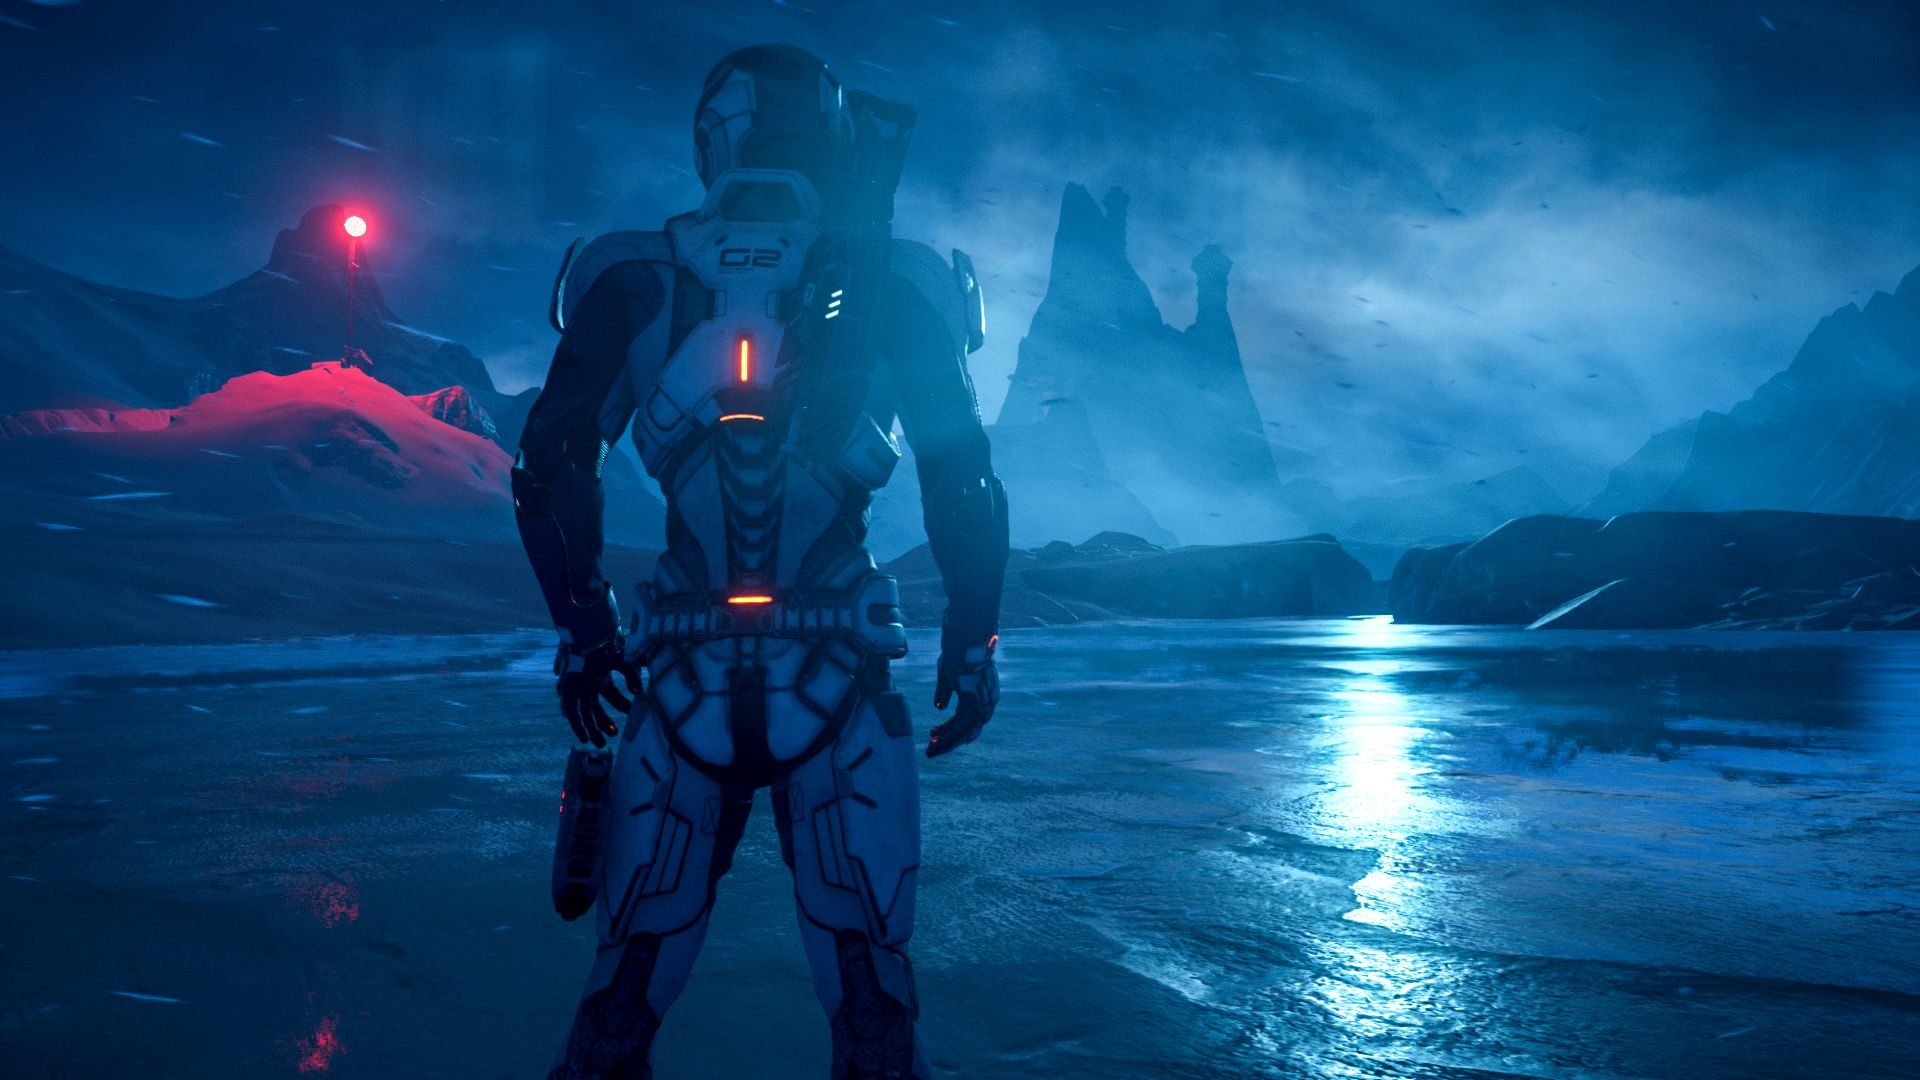 Mass Effect Andromeda Update 1.09 Further Improves Facial Animations and Cutscene Animations